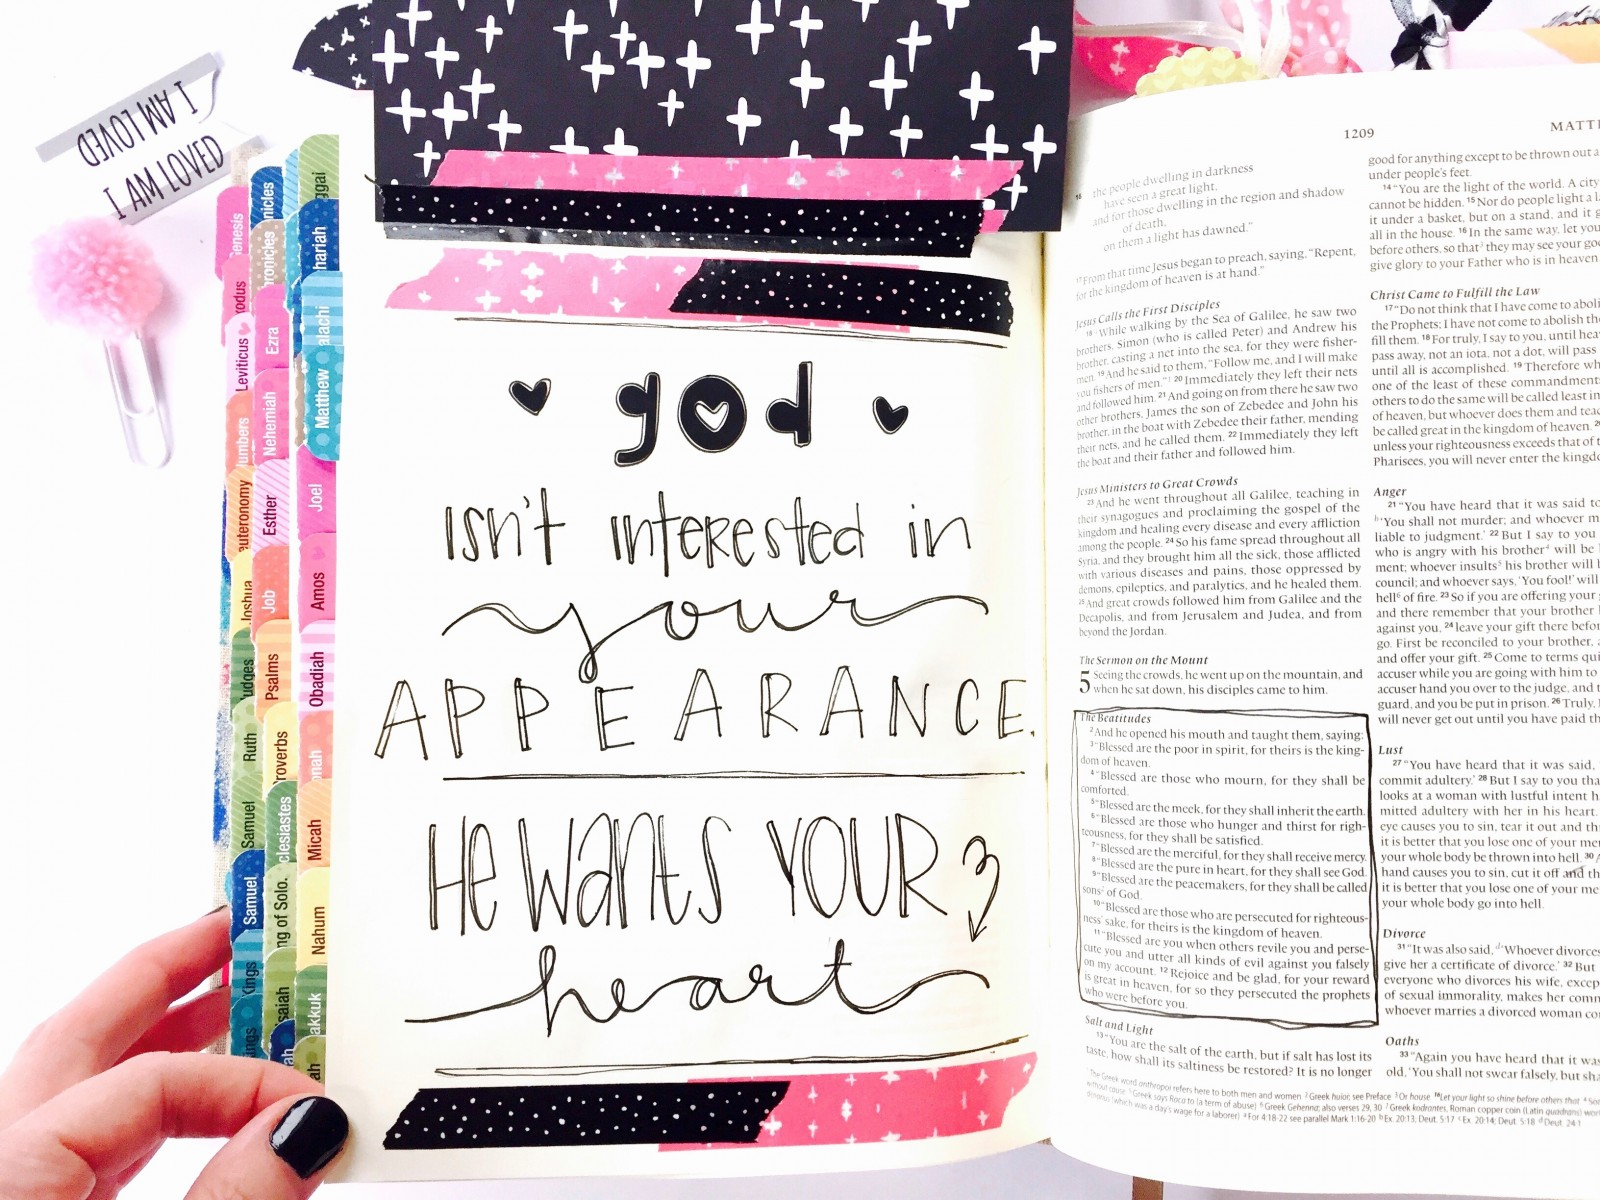 Lessons In Bible Journaling by Tawni Sattler | Interleaved Journaling Bible | Illustrated Faith by Bella Blvd